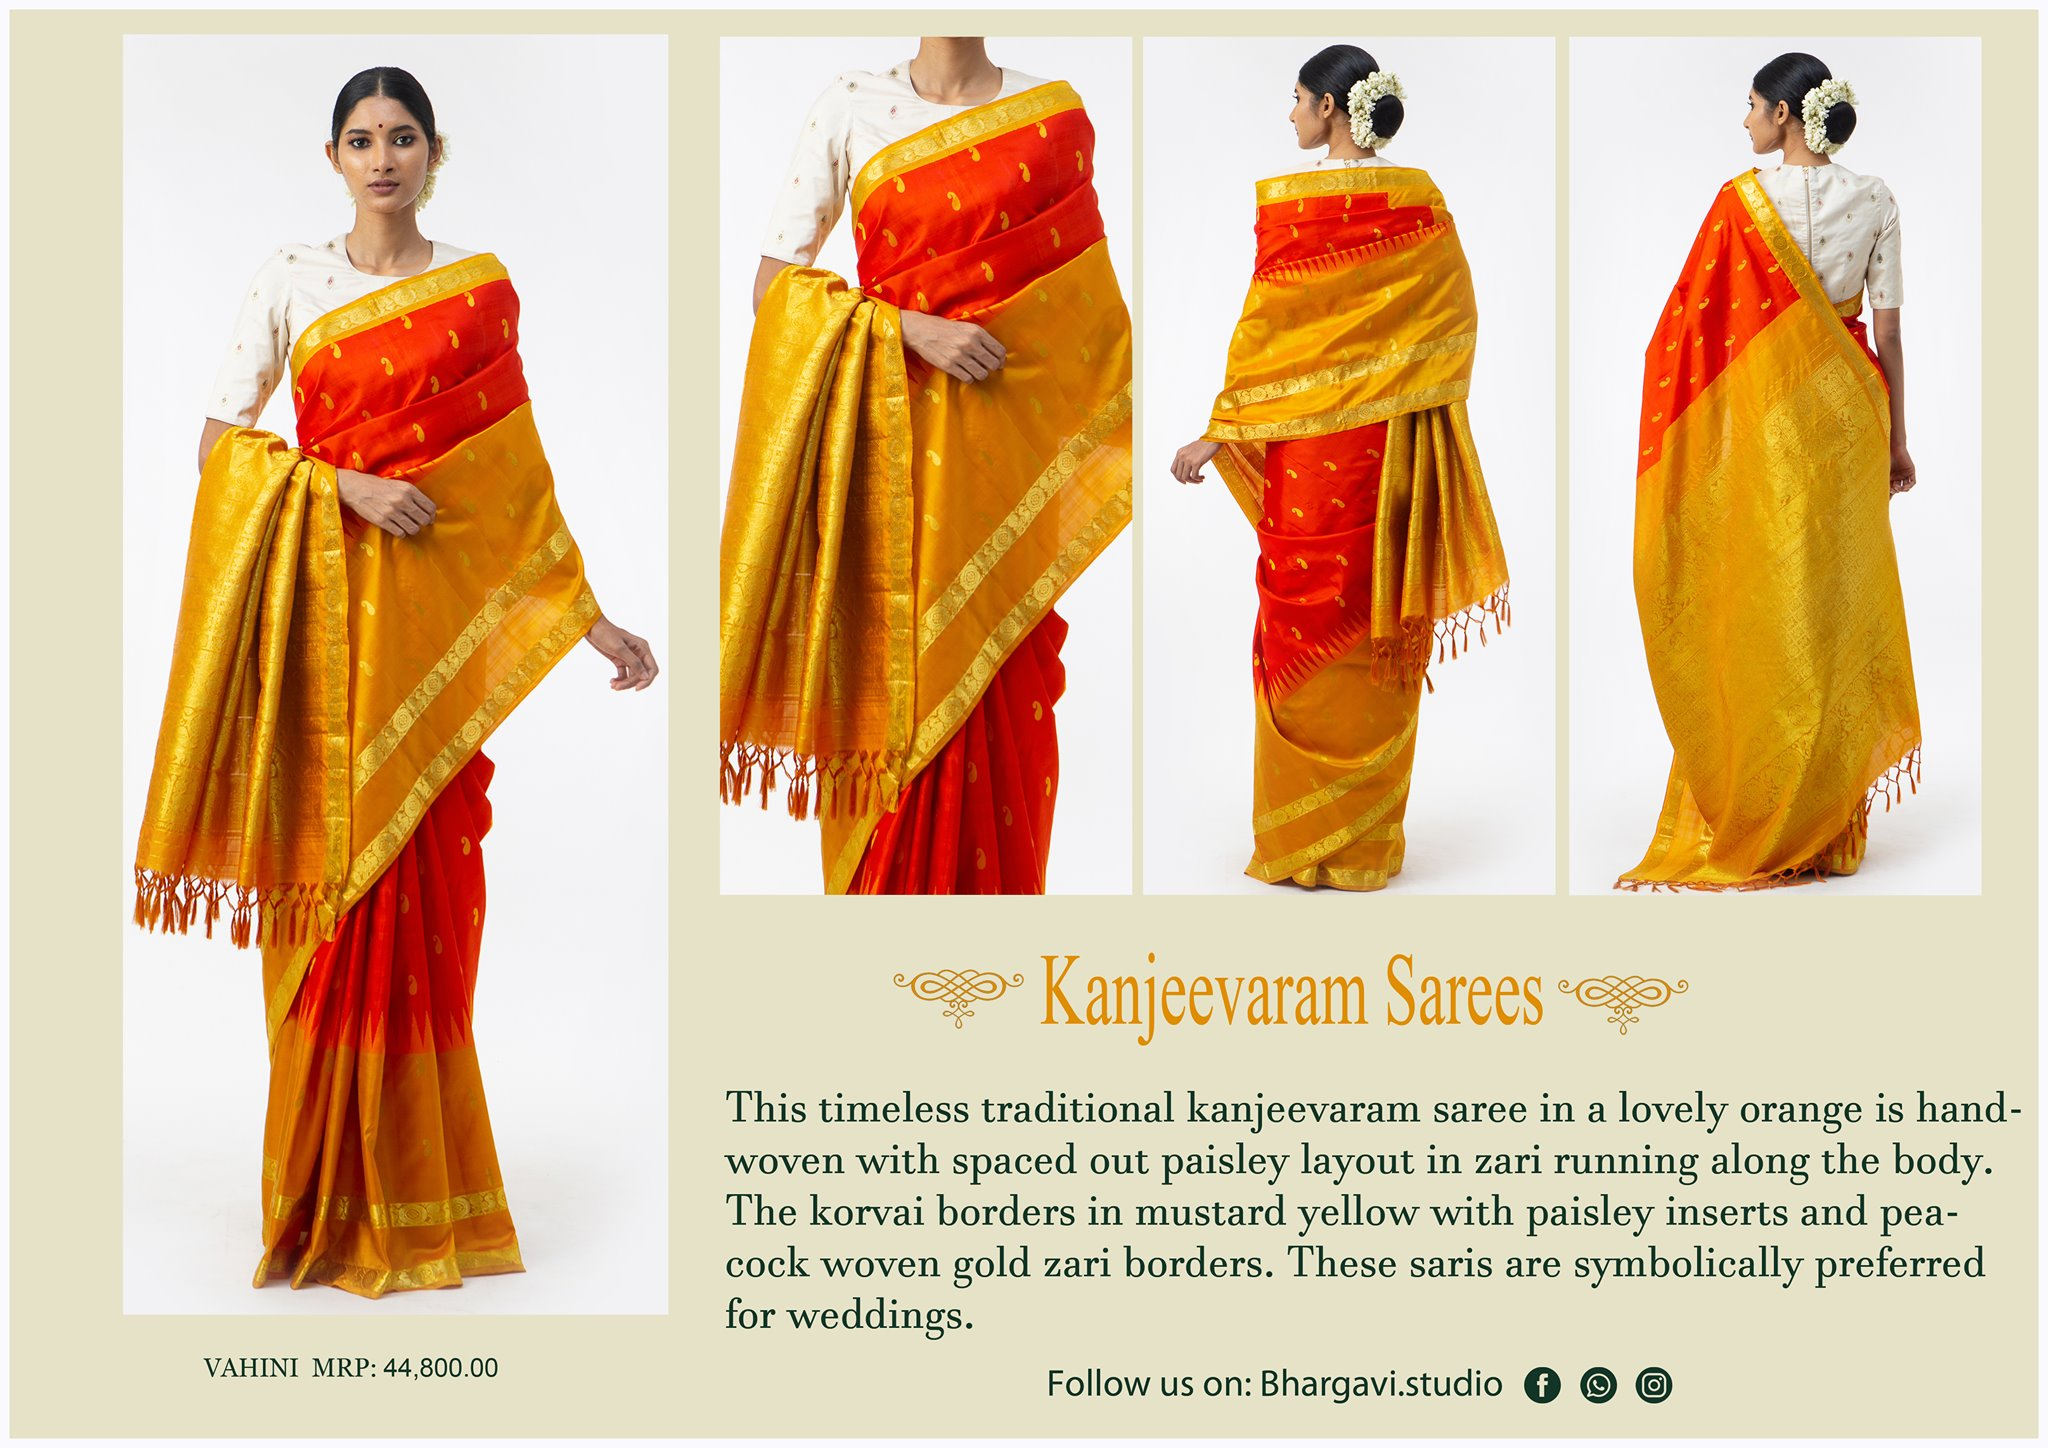 This timeless traditional kanjeevaram saree in a lovely orange is handwoven with spaced out paisley layout in zari running along the body. The korvai boarders in mustard yellow with paisley inserts and peacock woven gold zari boarders. 2021-05-13